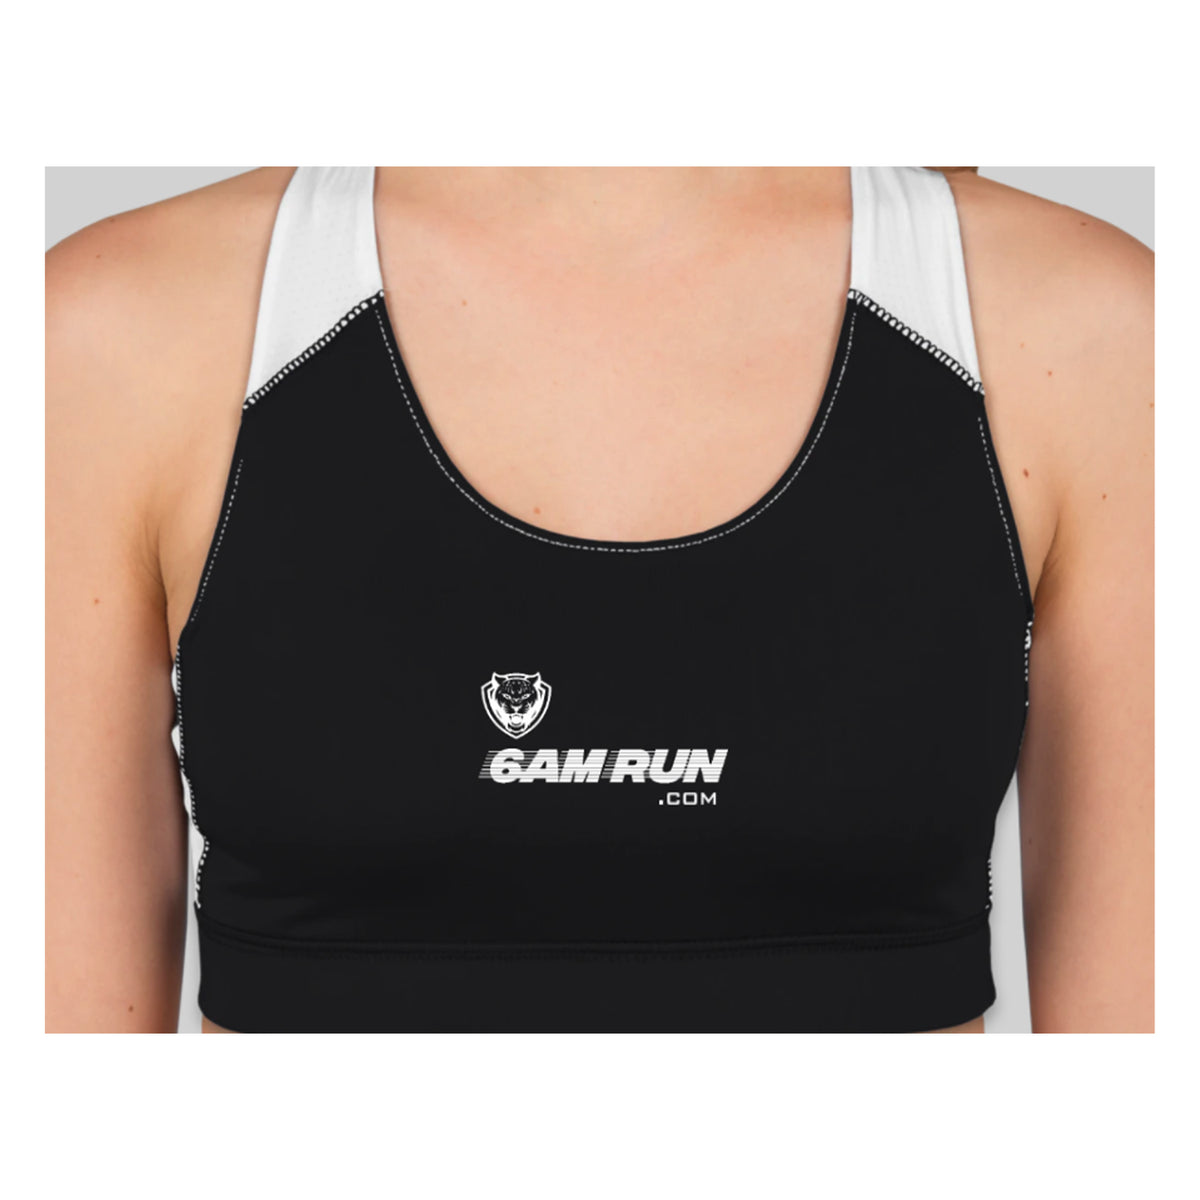 6AM Run Gear Womens Performance Sports Bra